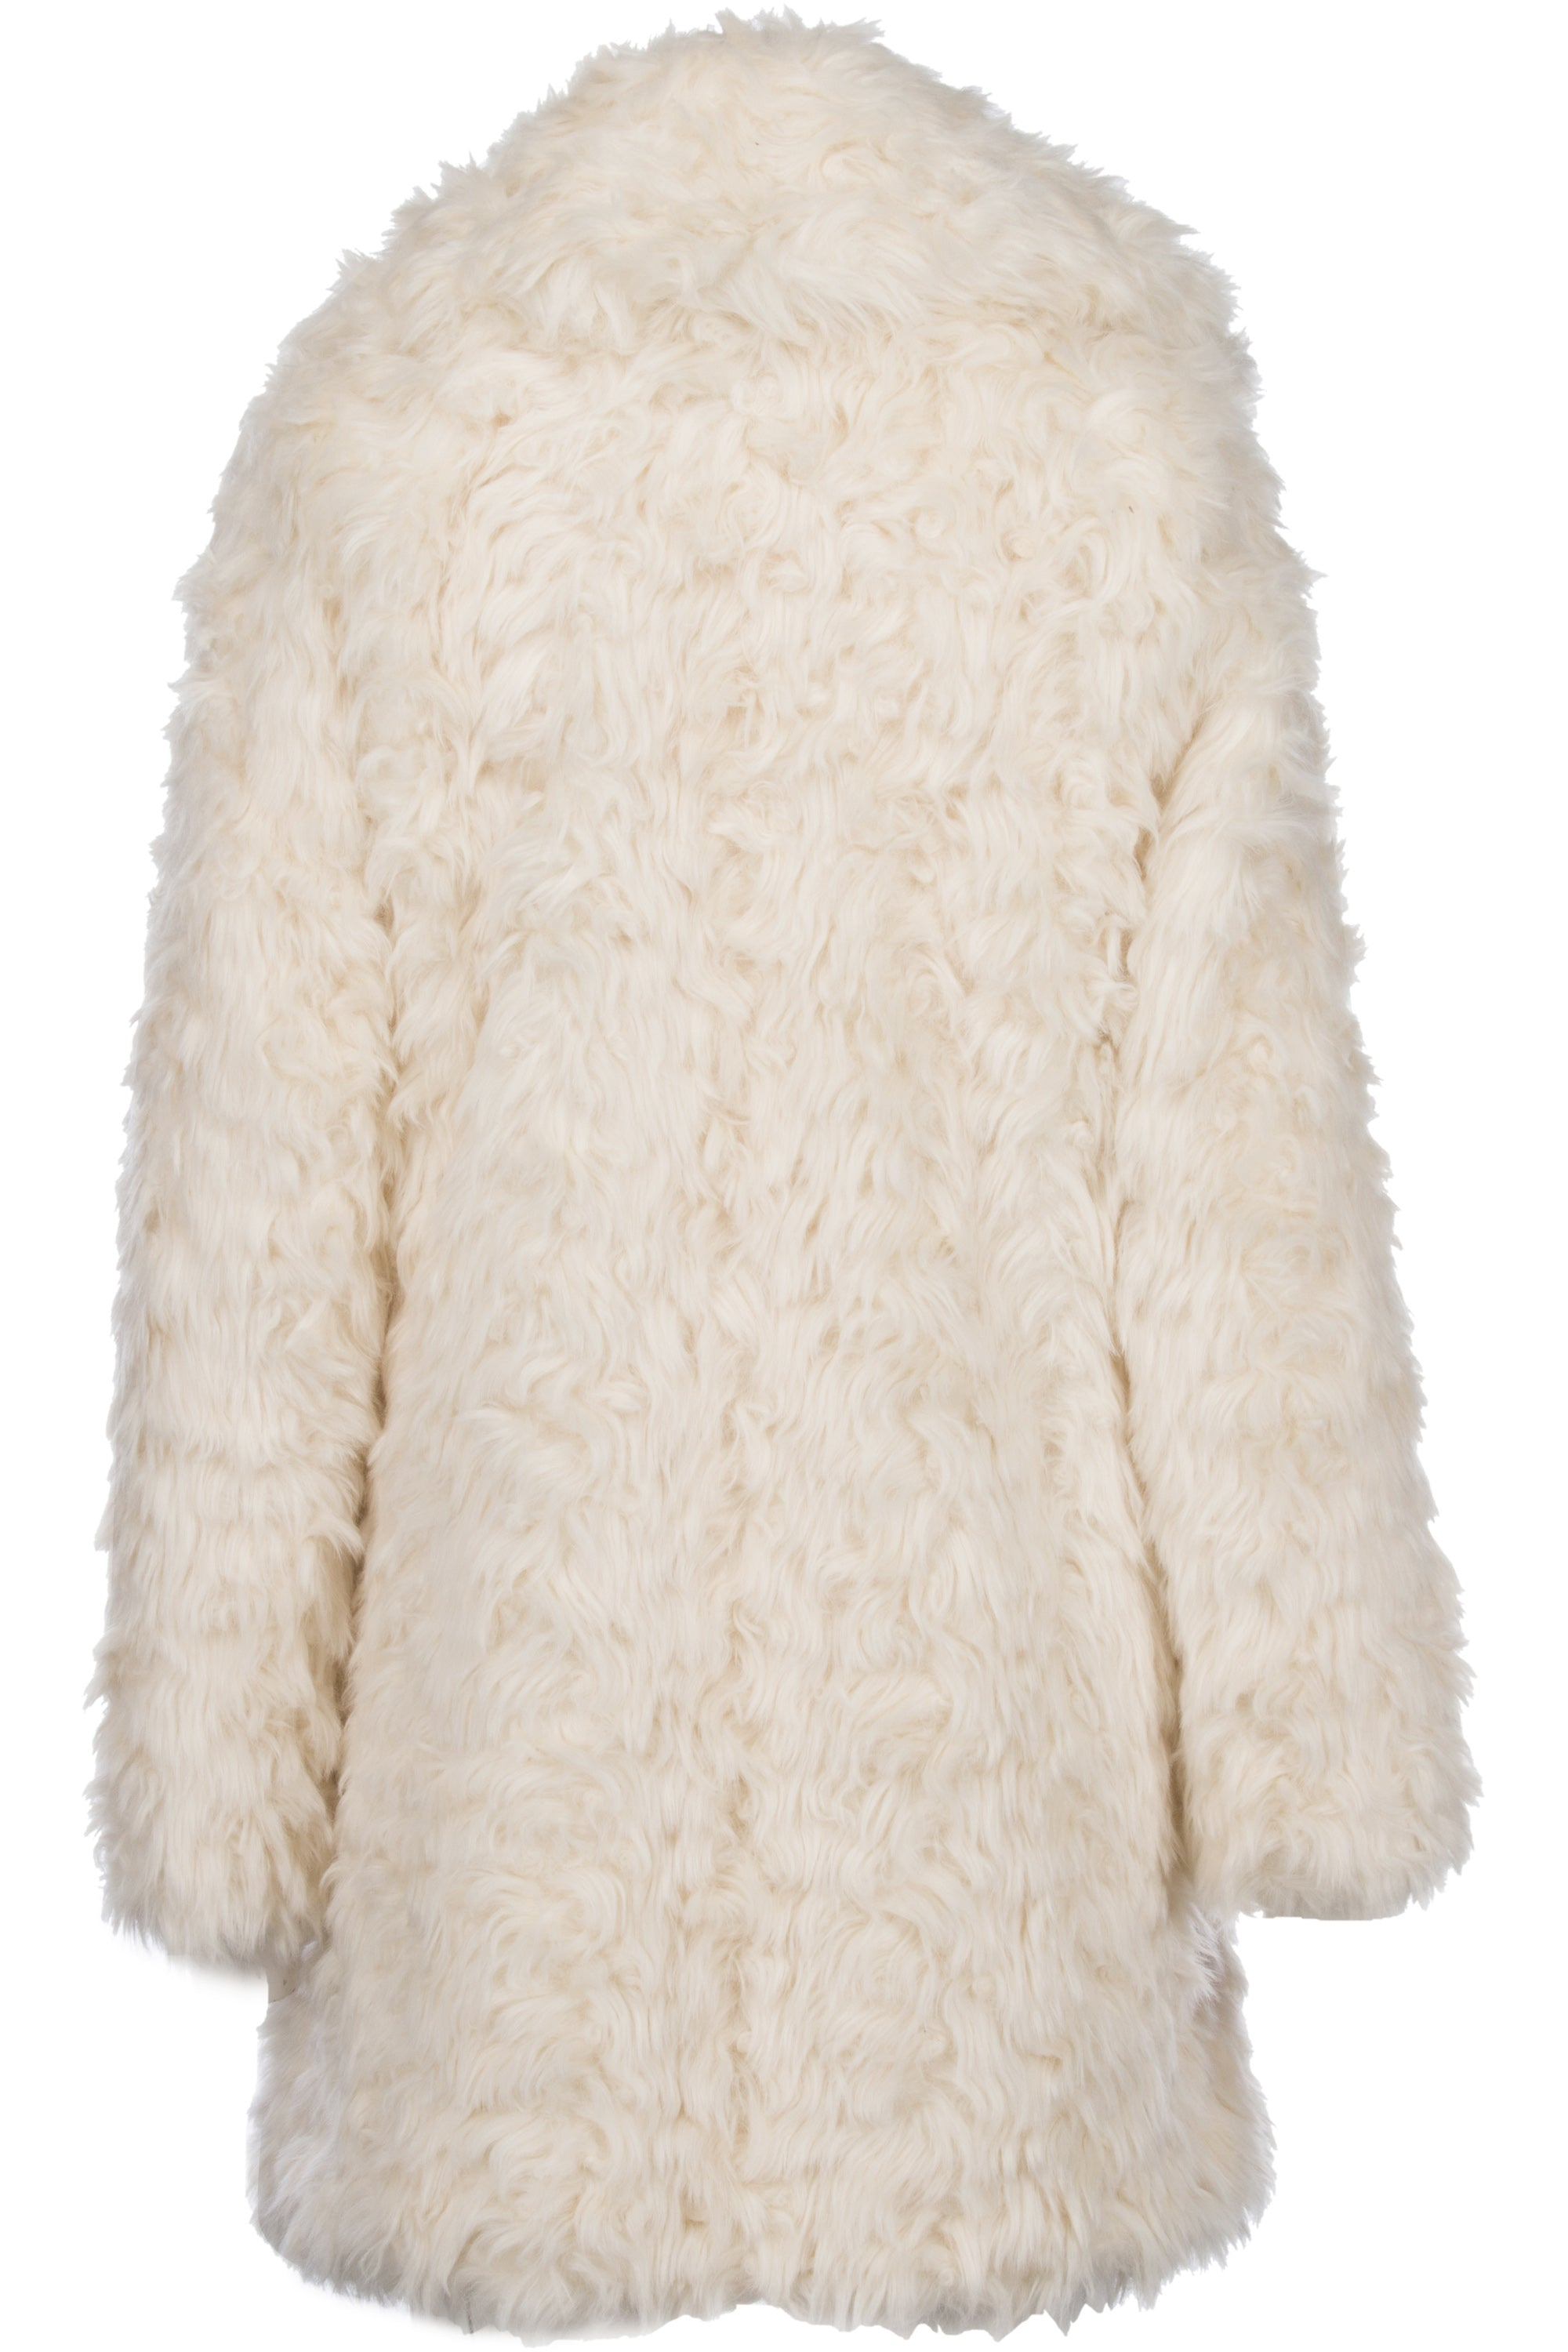 IVORY FUR COAT JACKETS by KENDALL + KYLIE